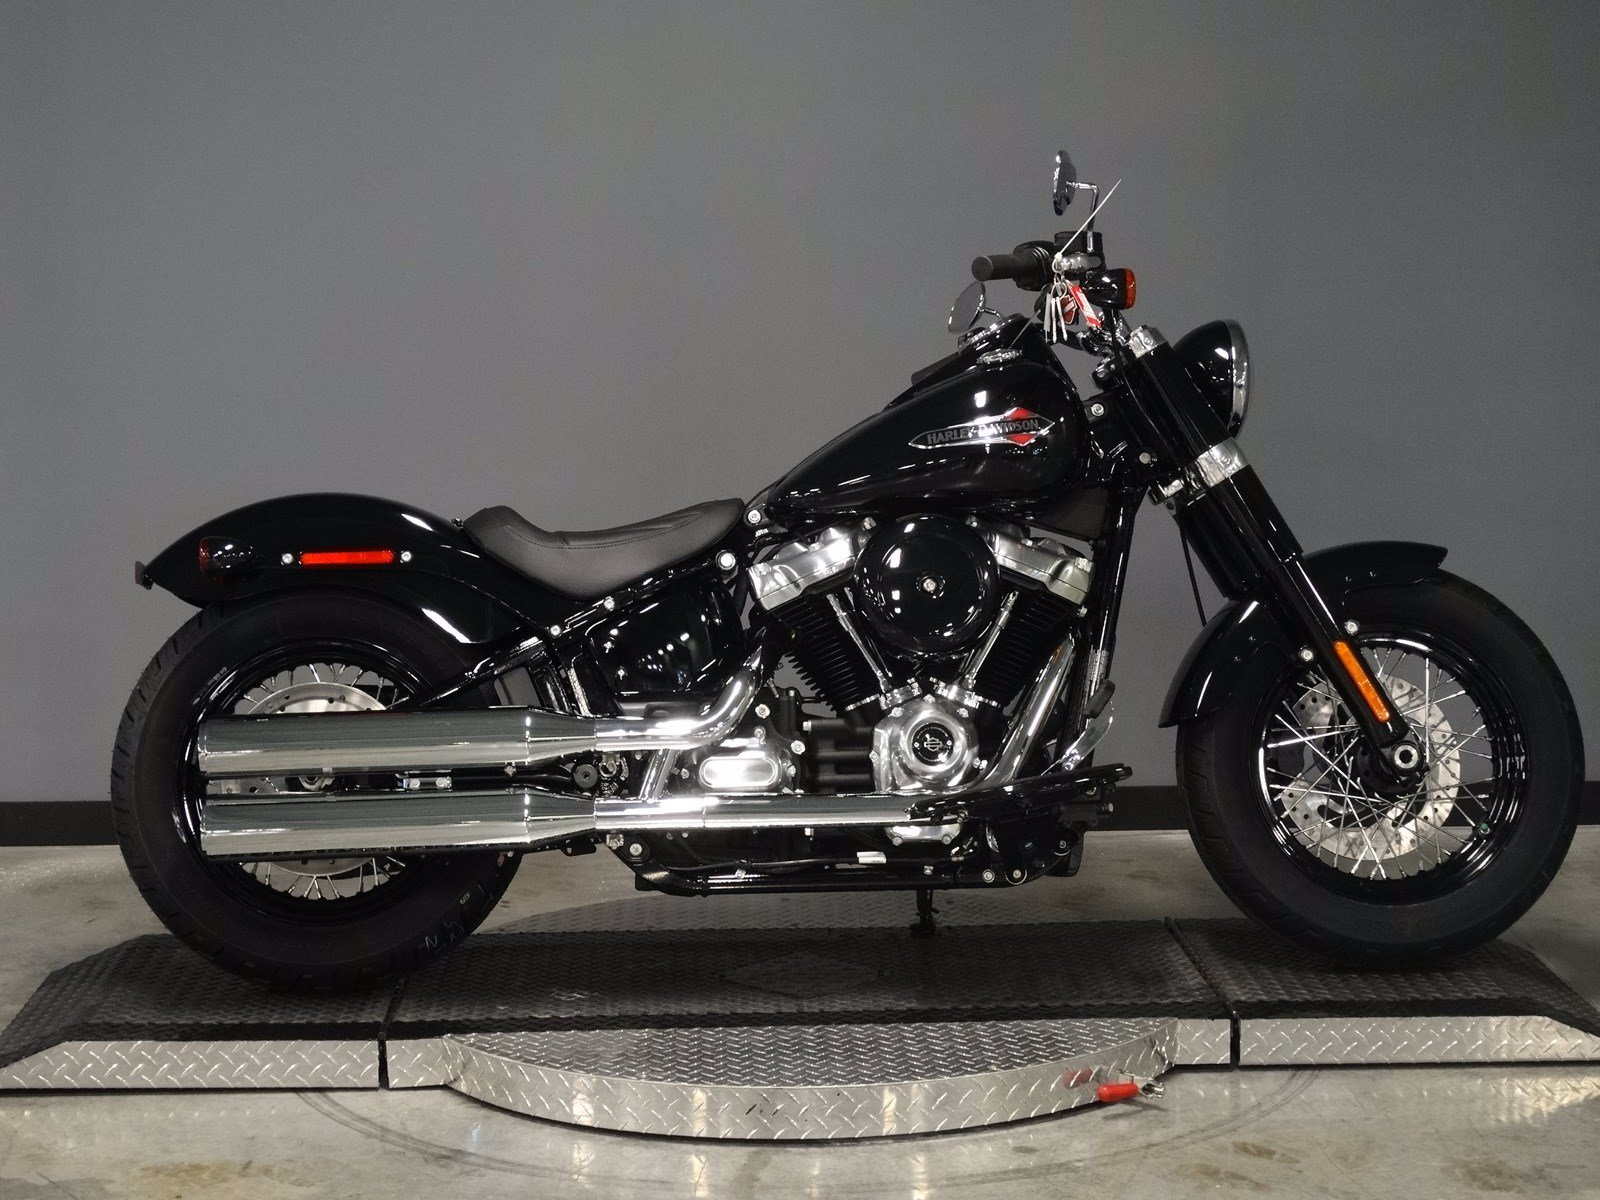 New 2021 Harley-Davidson Softail Slim FLSL